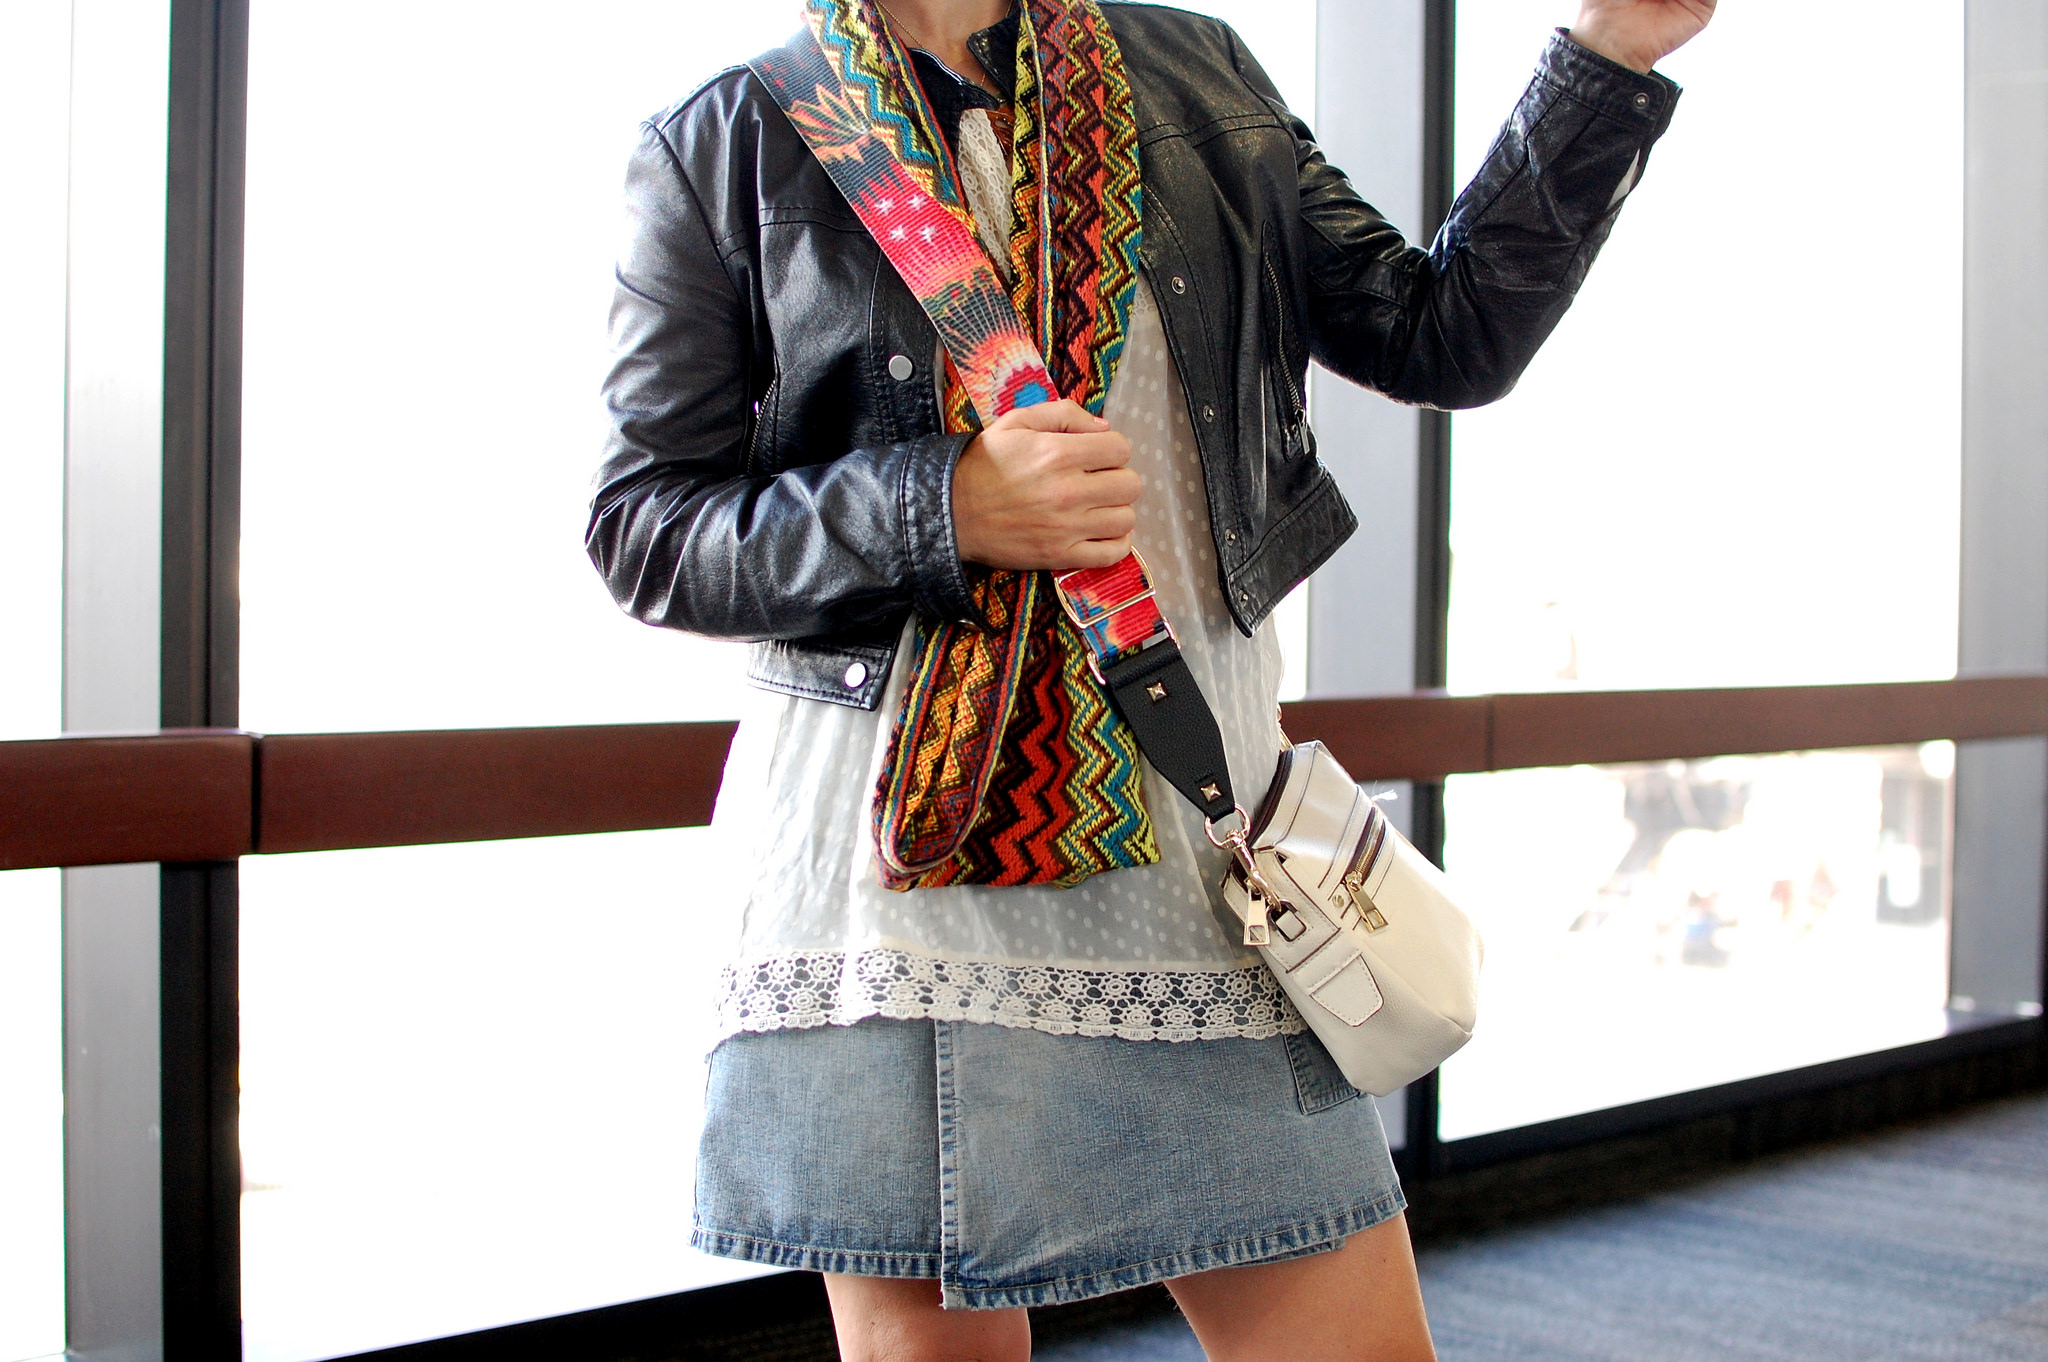 missoni knockoff scarf guitar strap purse daily outfit blog ootd whatiwore2day